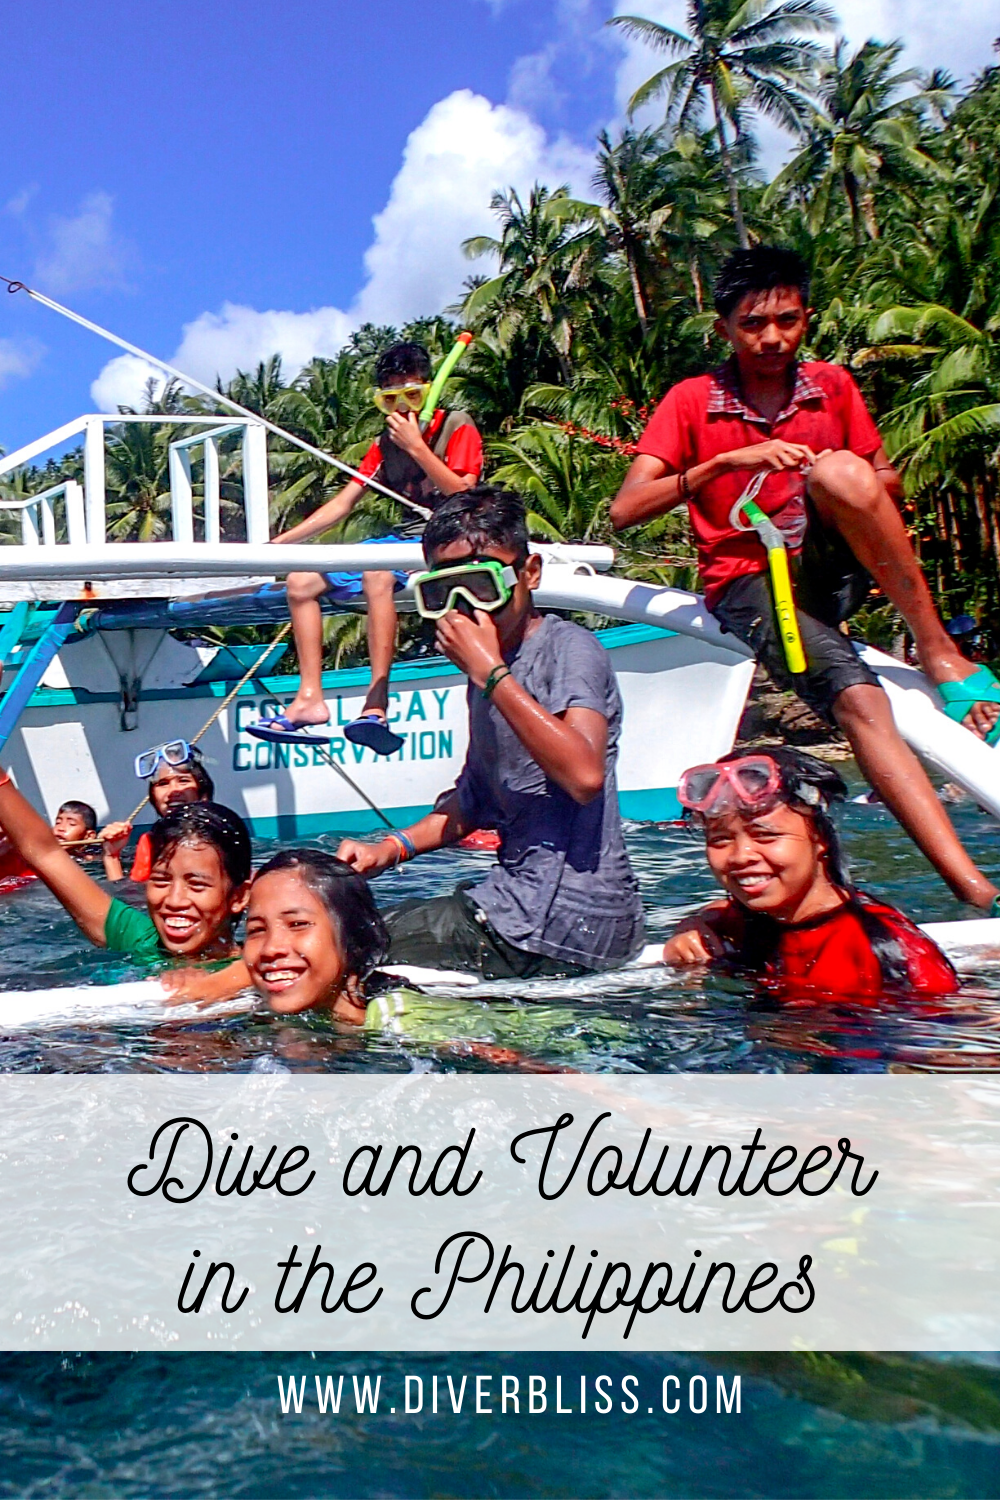 What It Was Like To Be A Filipino Dive Scholar At Coral Cay Conservation In 2020 Learn To Scuba Dive Scuba Diving Bucket List Philippines Travel Guide